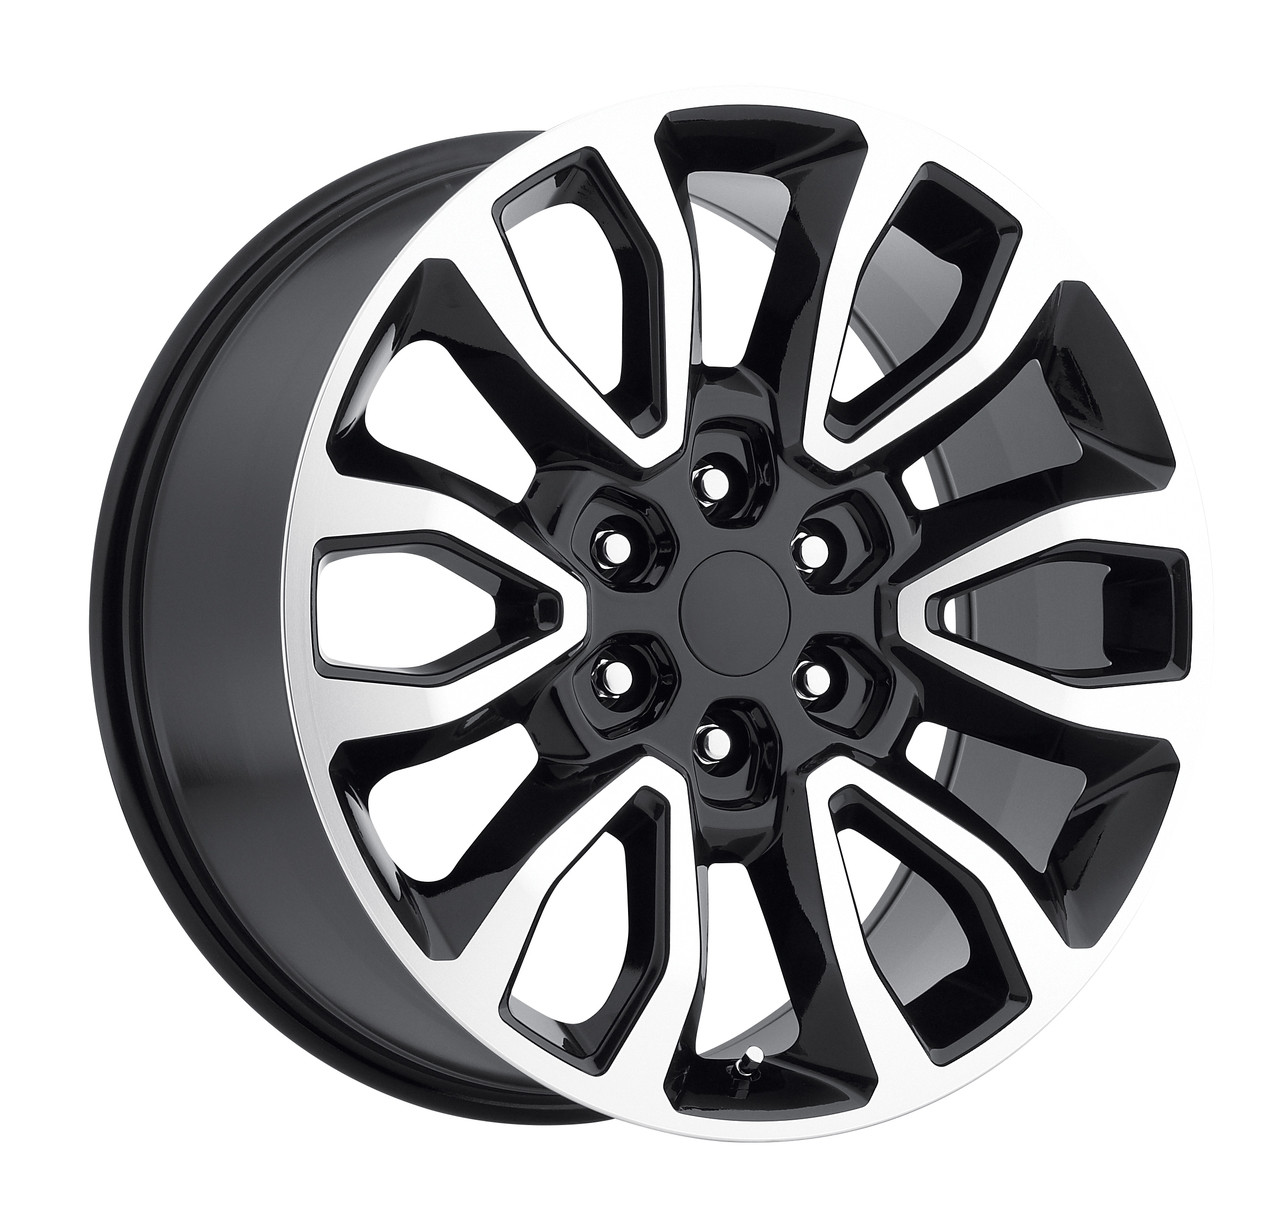 20 Fits Ford F150 6 Lug Wheels Black Machined Face Raptor Style Set Of 4 20x9 Rims Stock Wheel Solutions